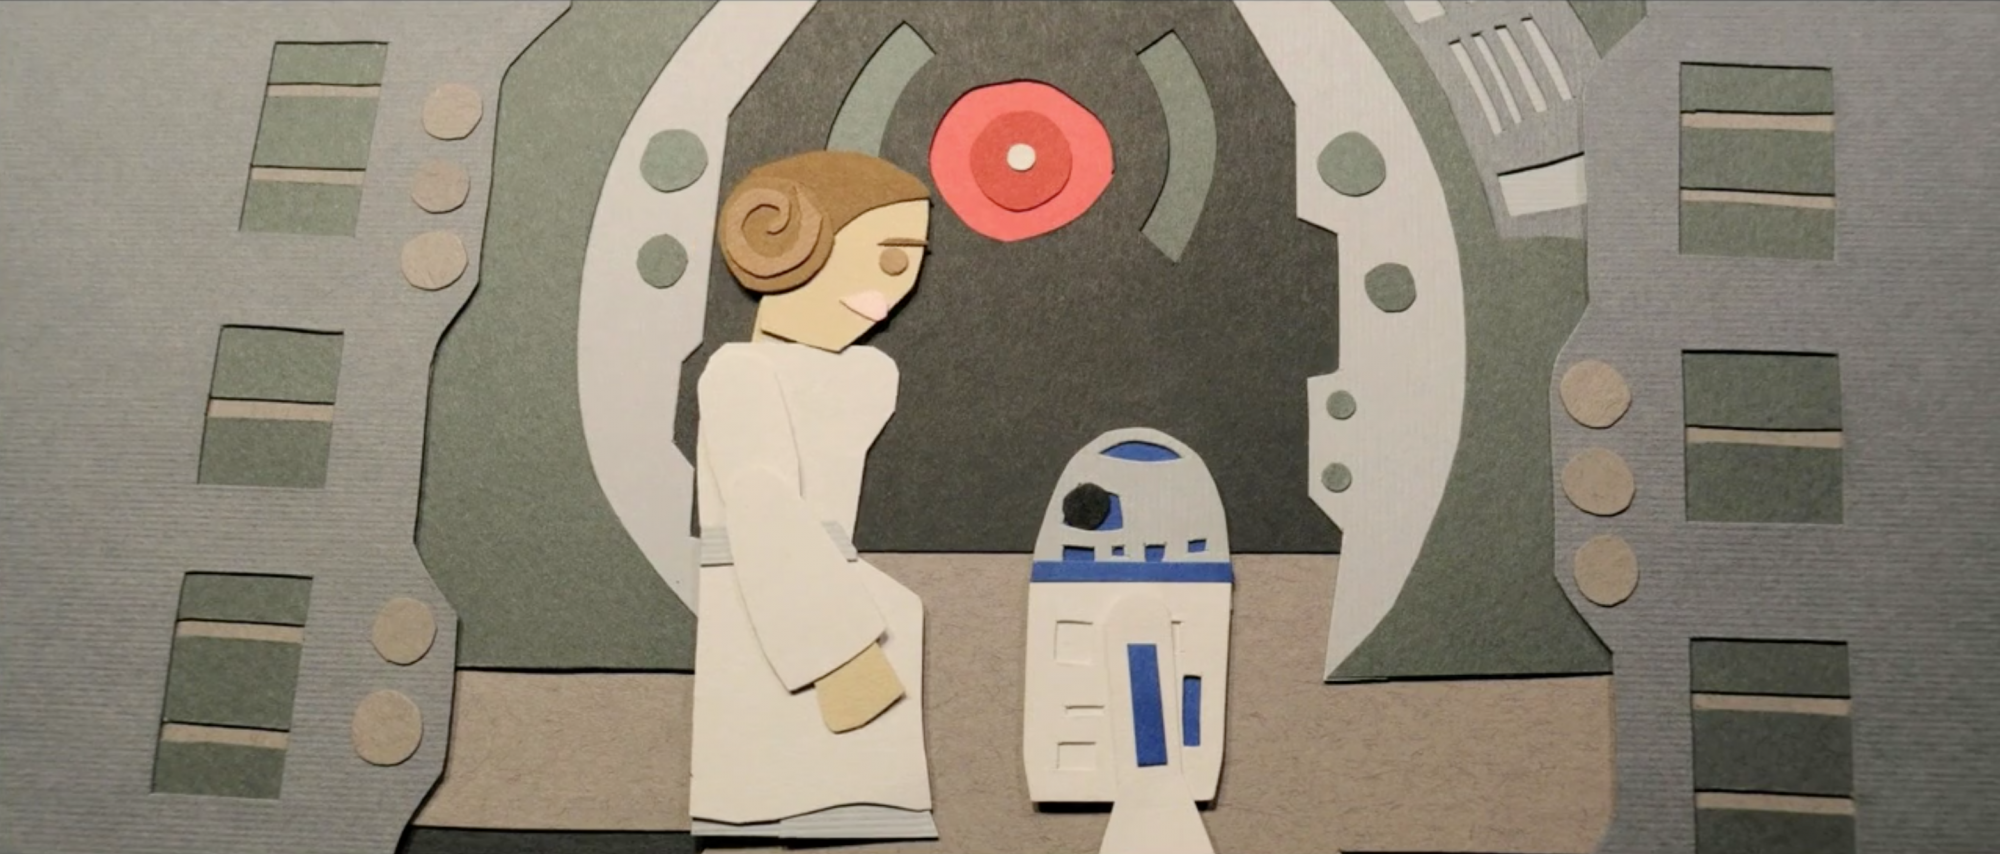 Star Wars given the Paper Treatment by Eric Powers - Princess Leia + R2D2